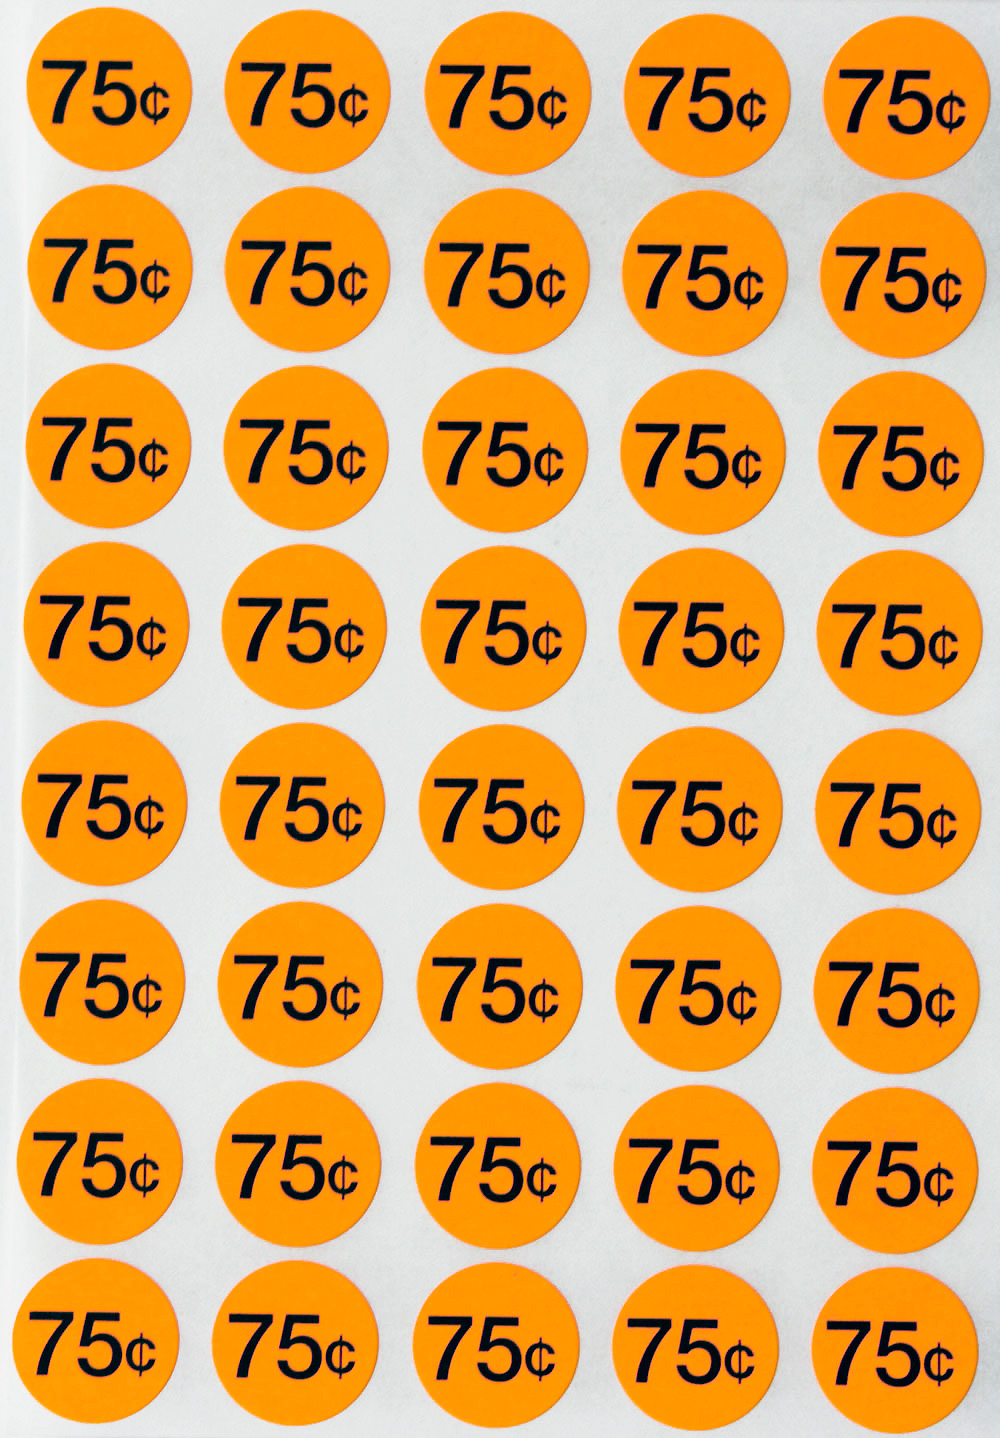 Garage Sale Price Stickers Price Stickers Pricing Labels 7 00 Dollars Garage Sale Label In Neon Orange 3 4